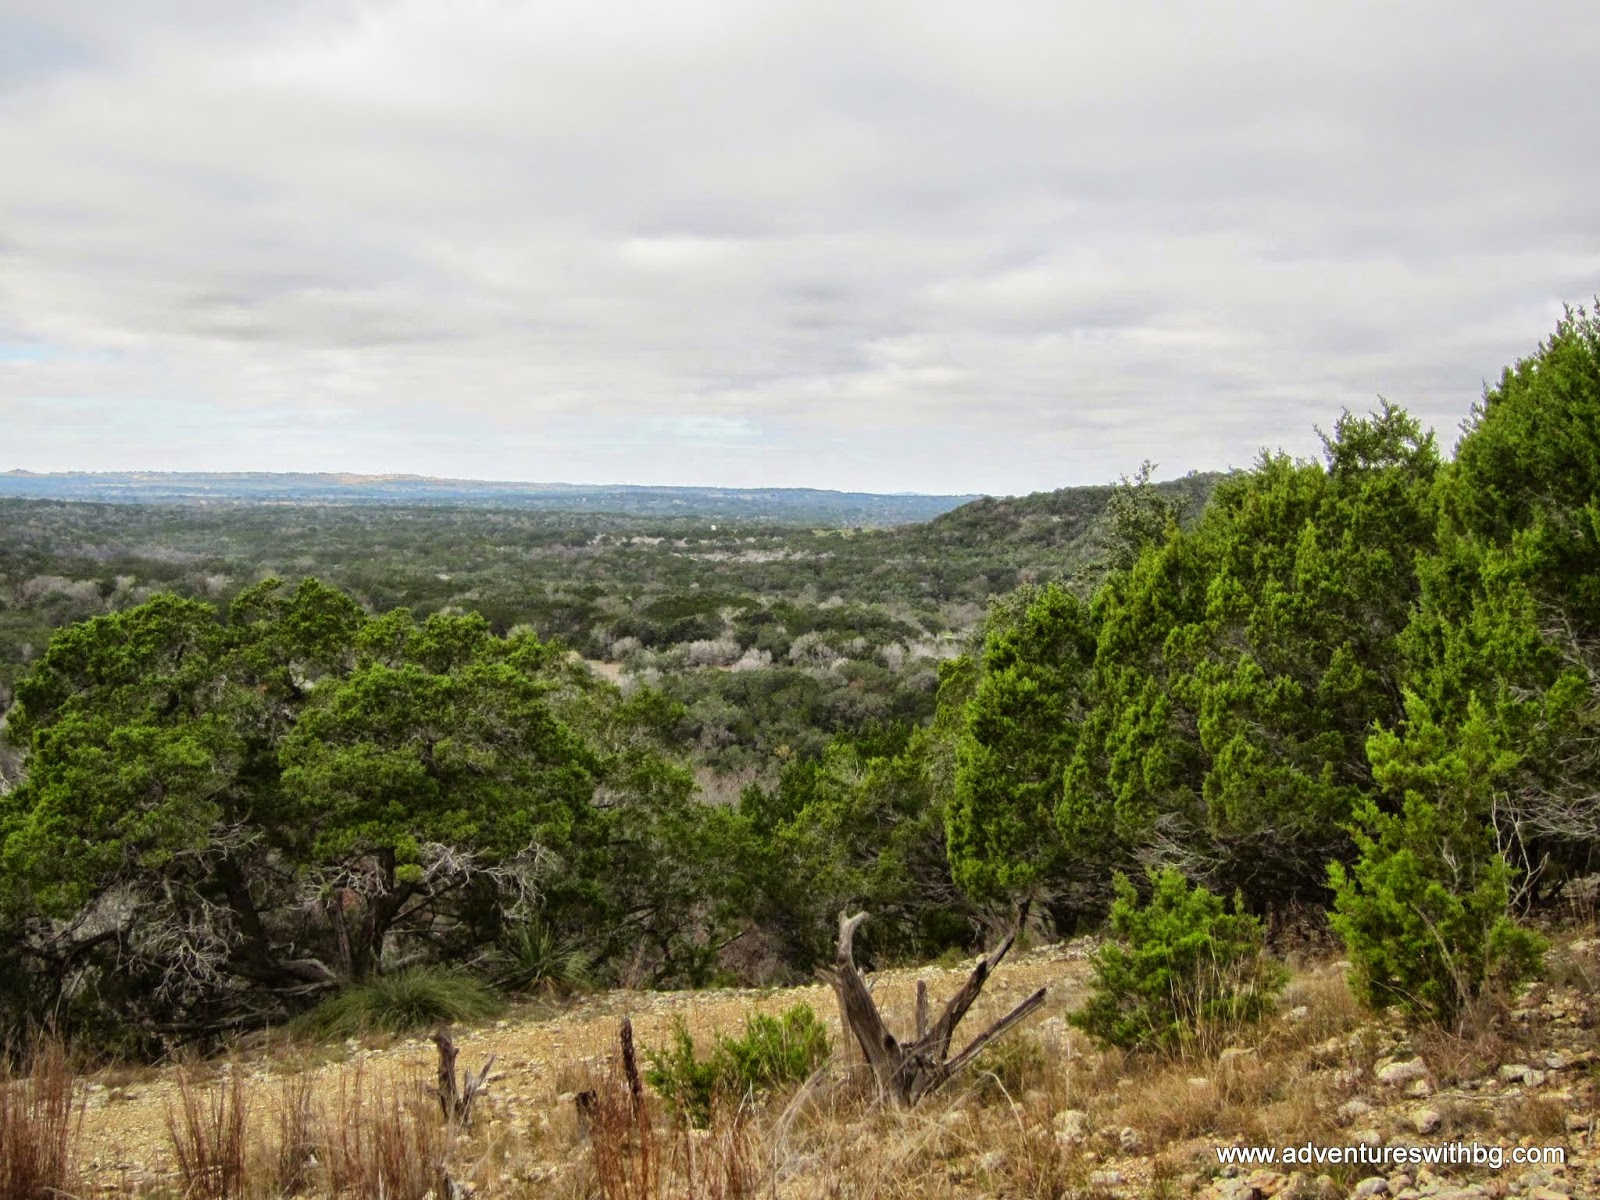 You can see the Texas Hill country and Texas Mountains.